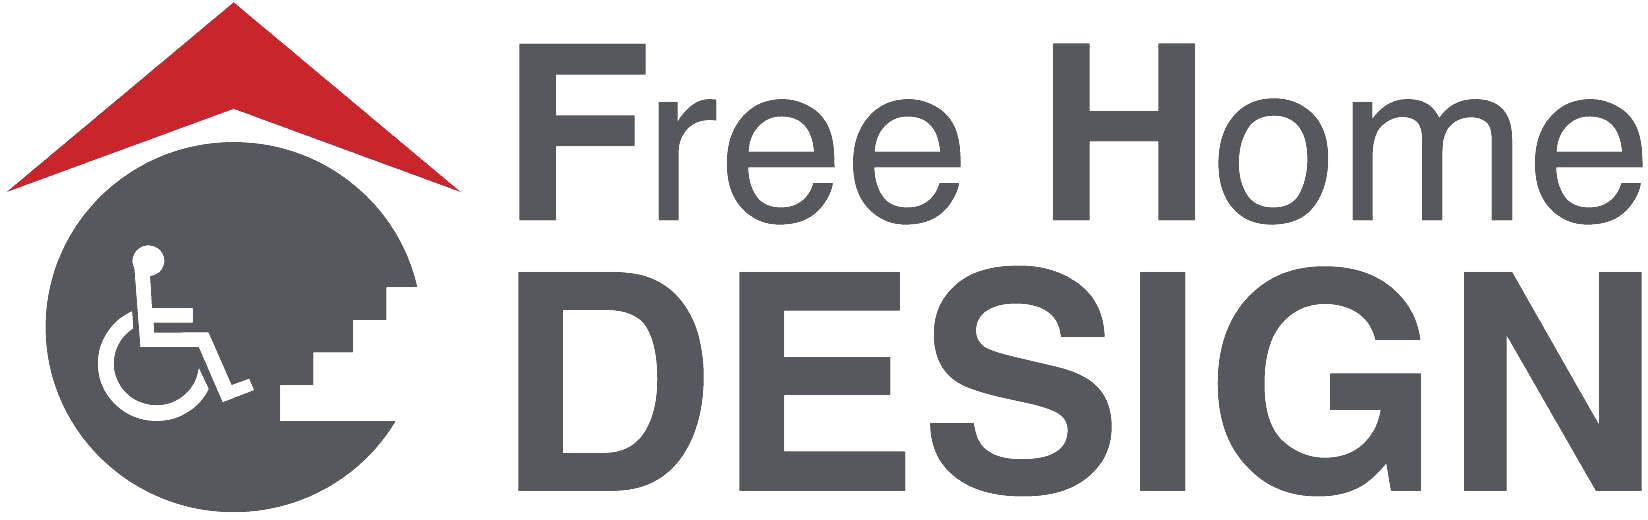 freehomedesign